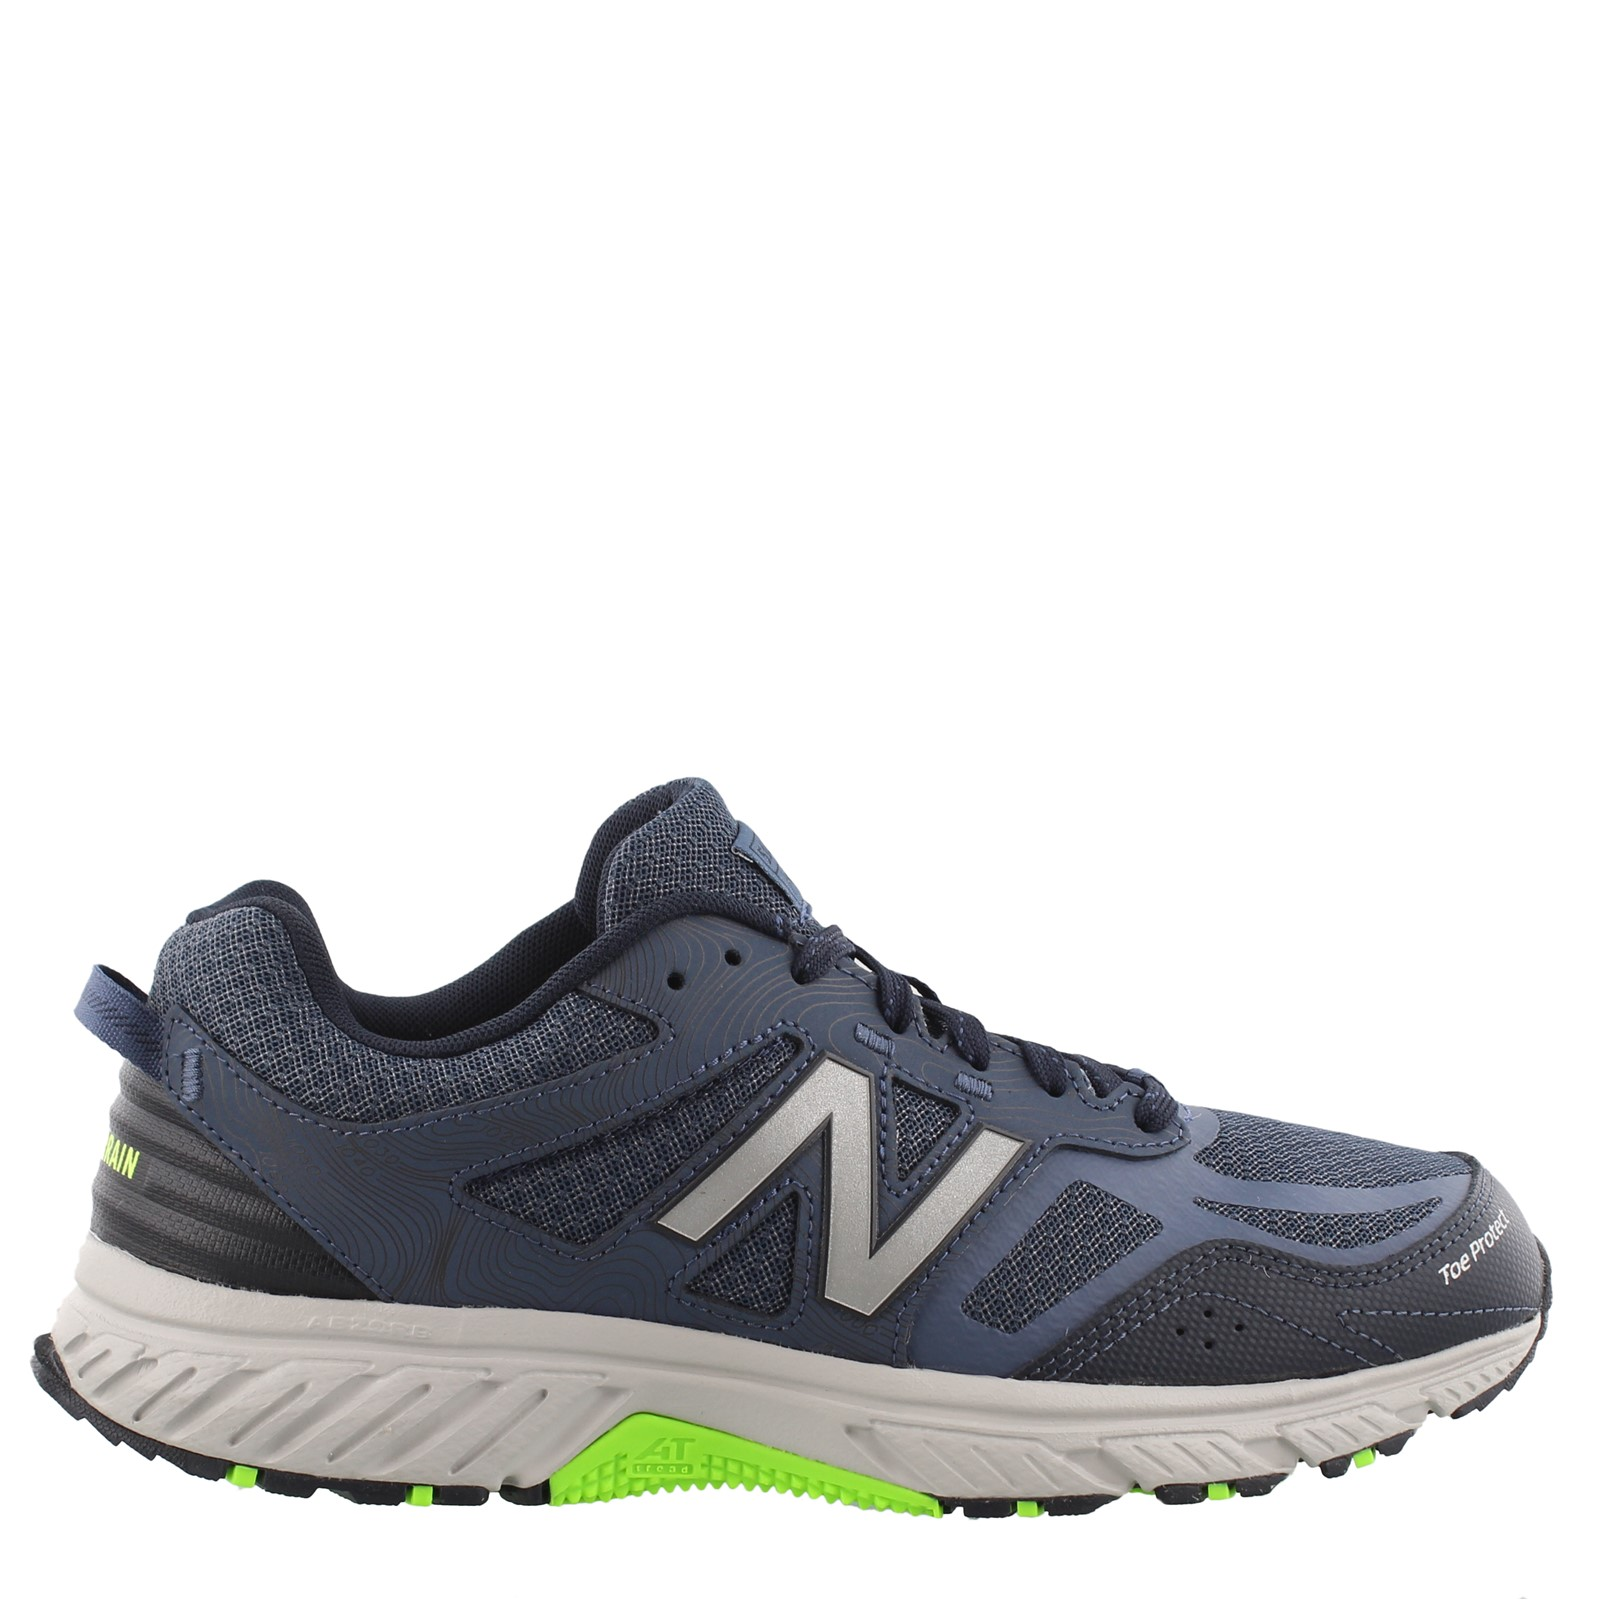 Men's New Balance, 510v4 Trail Running Sneaker